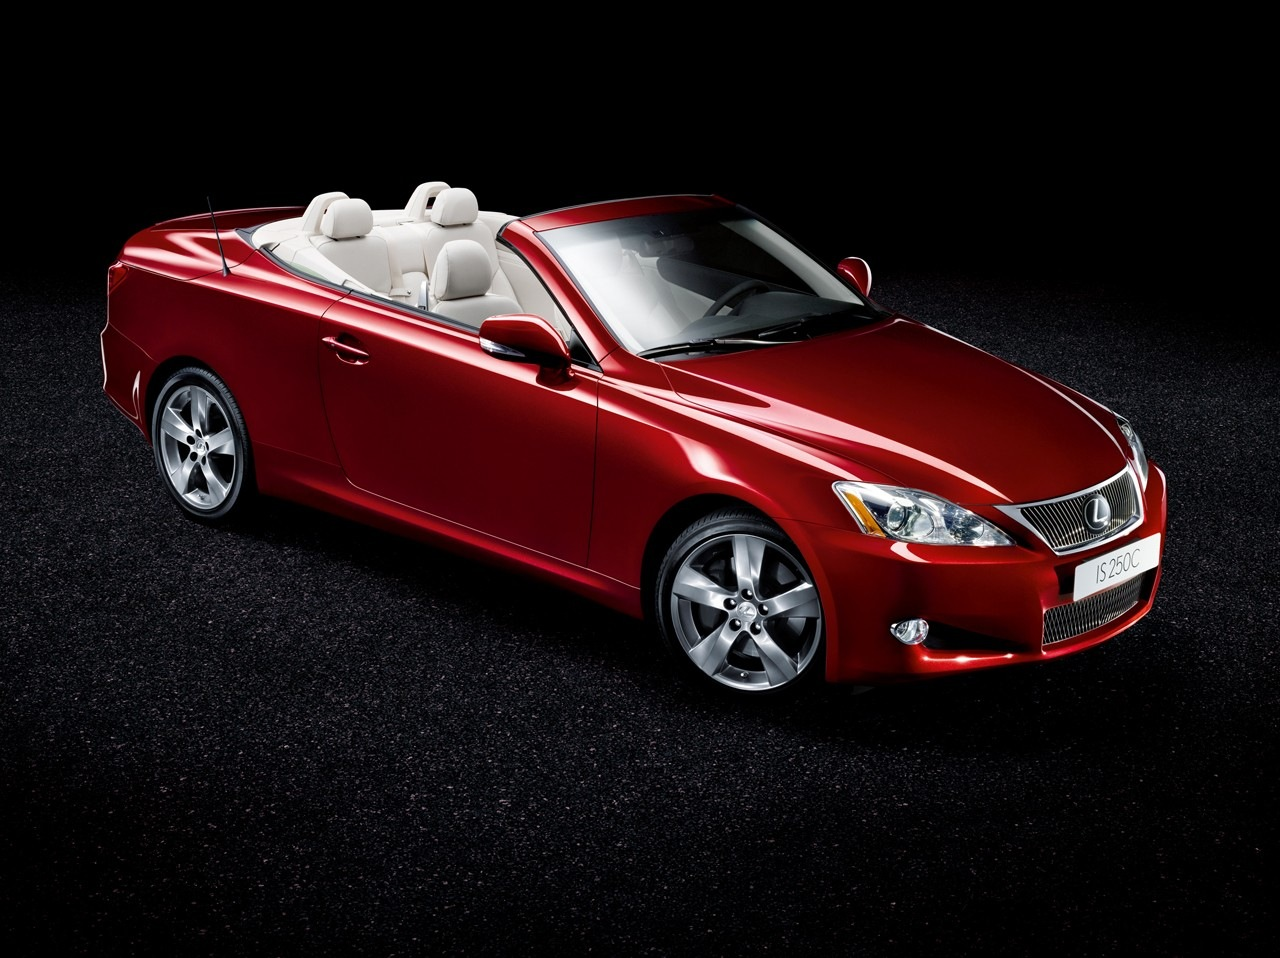 Lexus IS 250C Convertible Cars Pictures Amazing Desktop Backgrounds